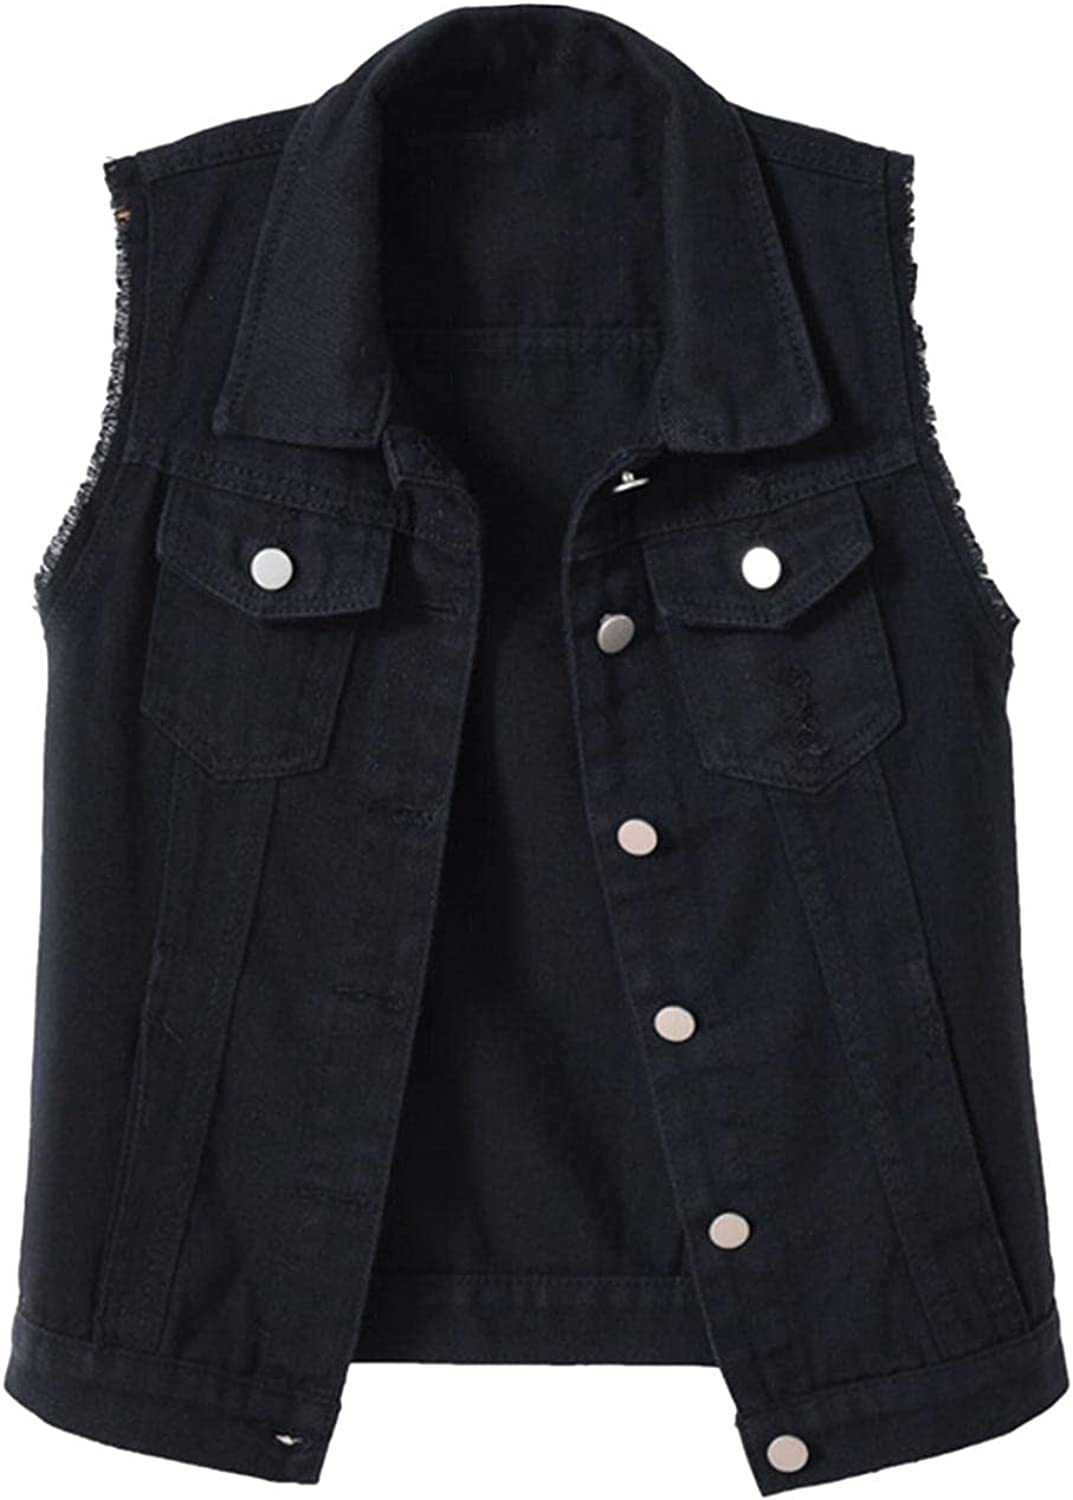 FGDJEE Vest Jackets for Women Fashion Classic Button Sleeveless Denim Shirt Casual Loose Fit Denim Jacket with Pockets